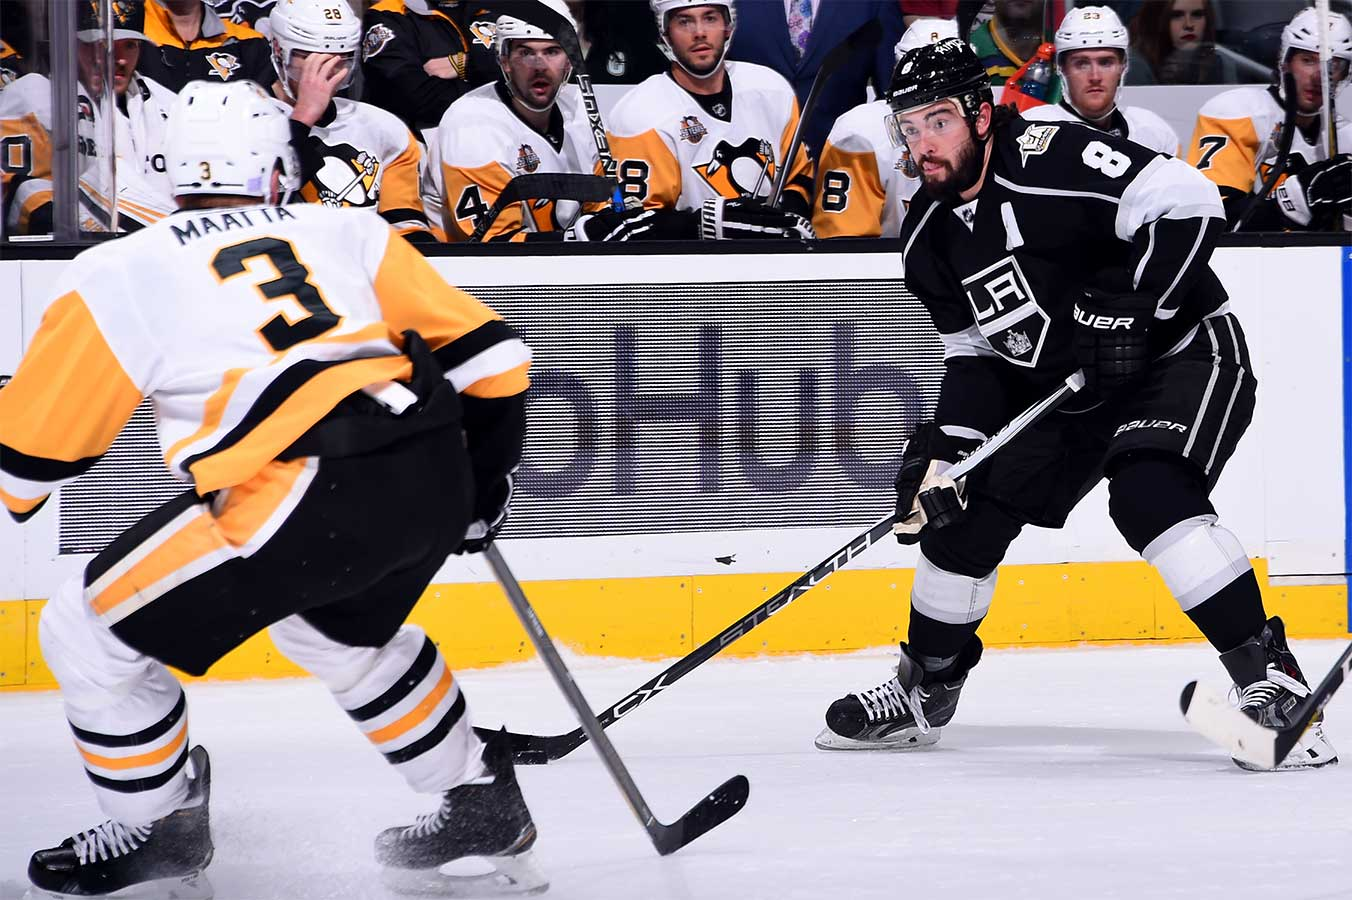 Game 4 Pittsburgh Penguins